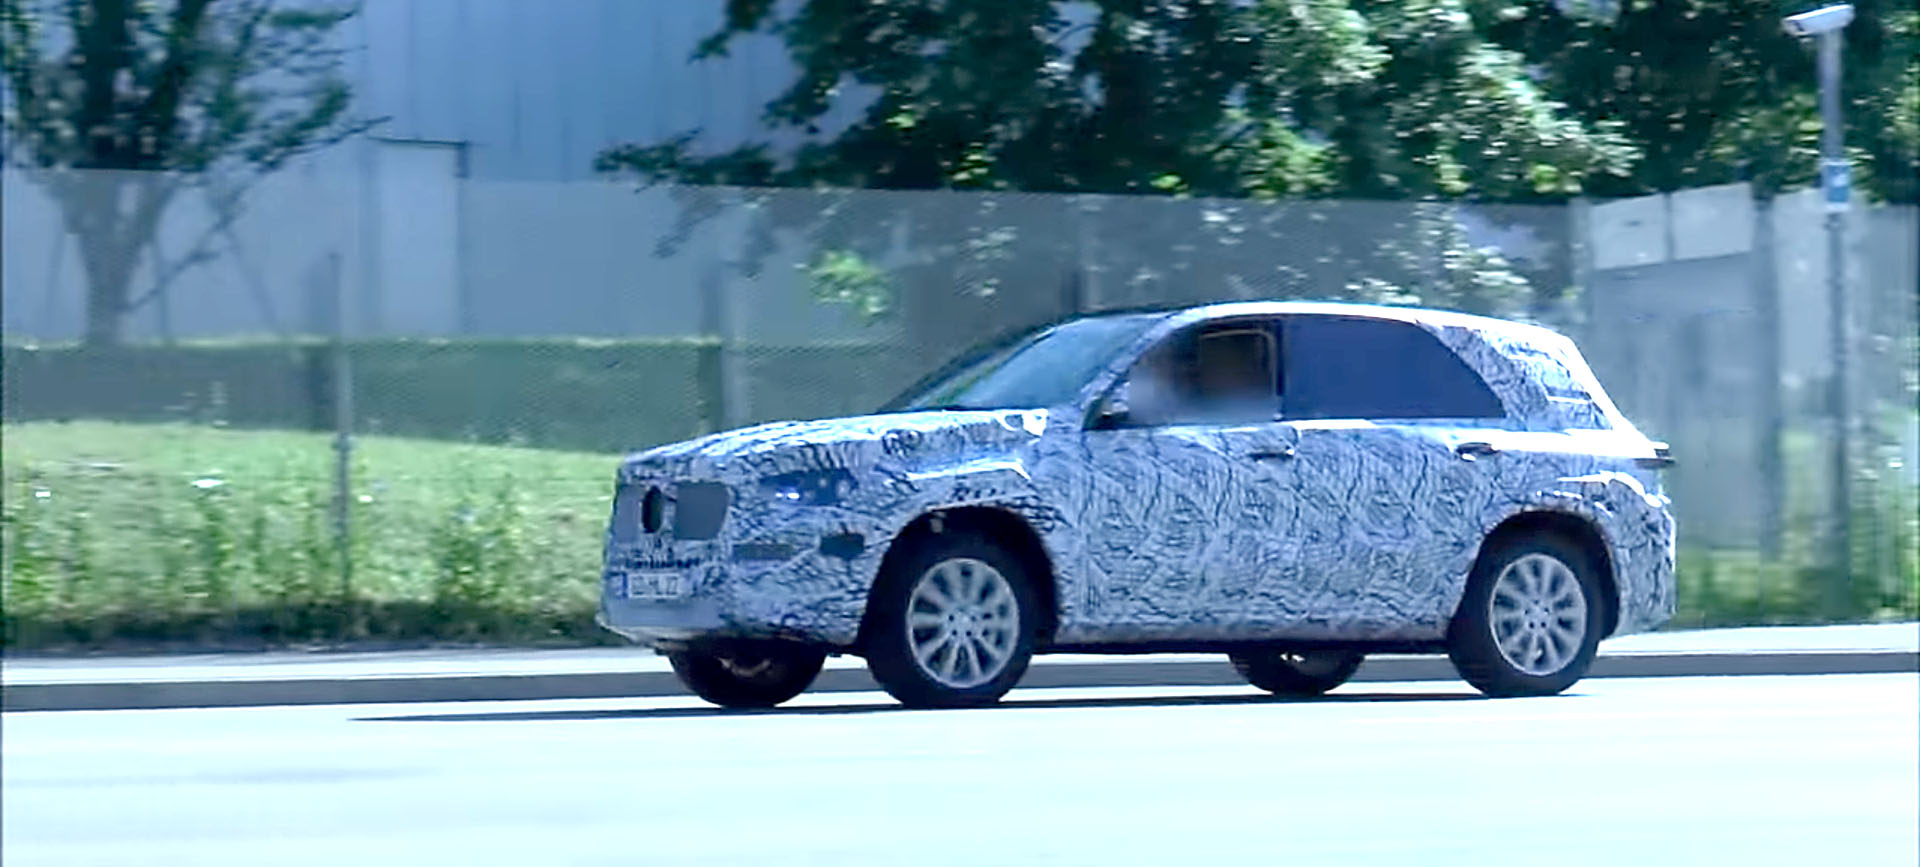 2019 mercedes benz gle spied on german roads looking much for Mercedes benz gle 2019